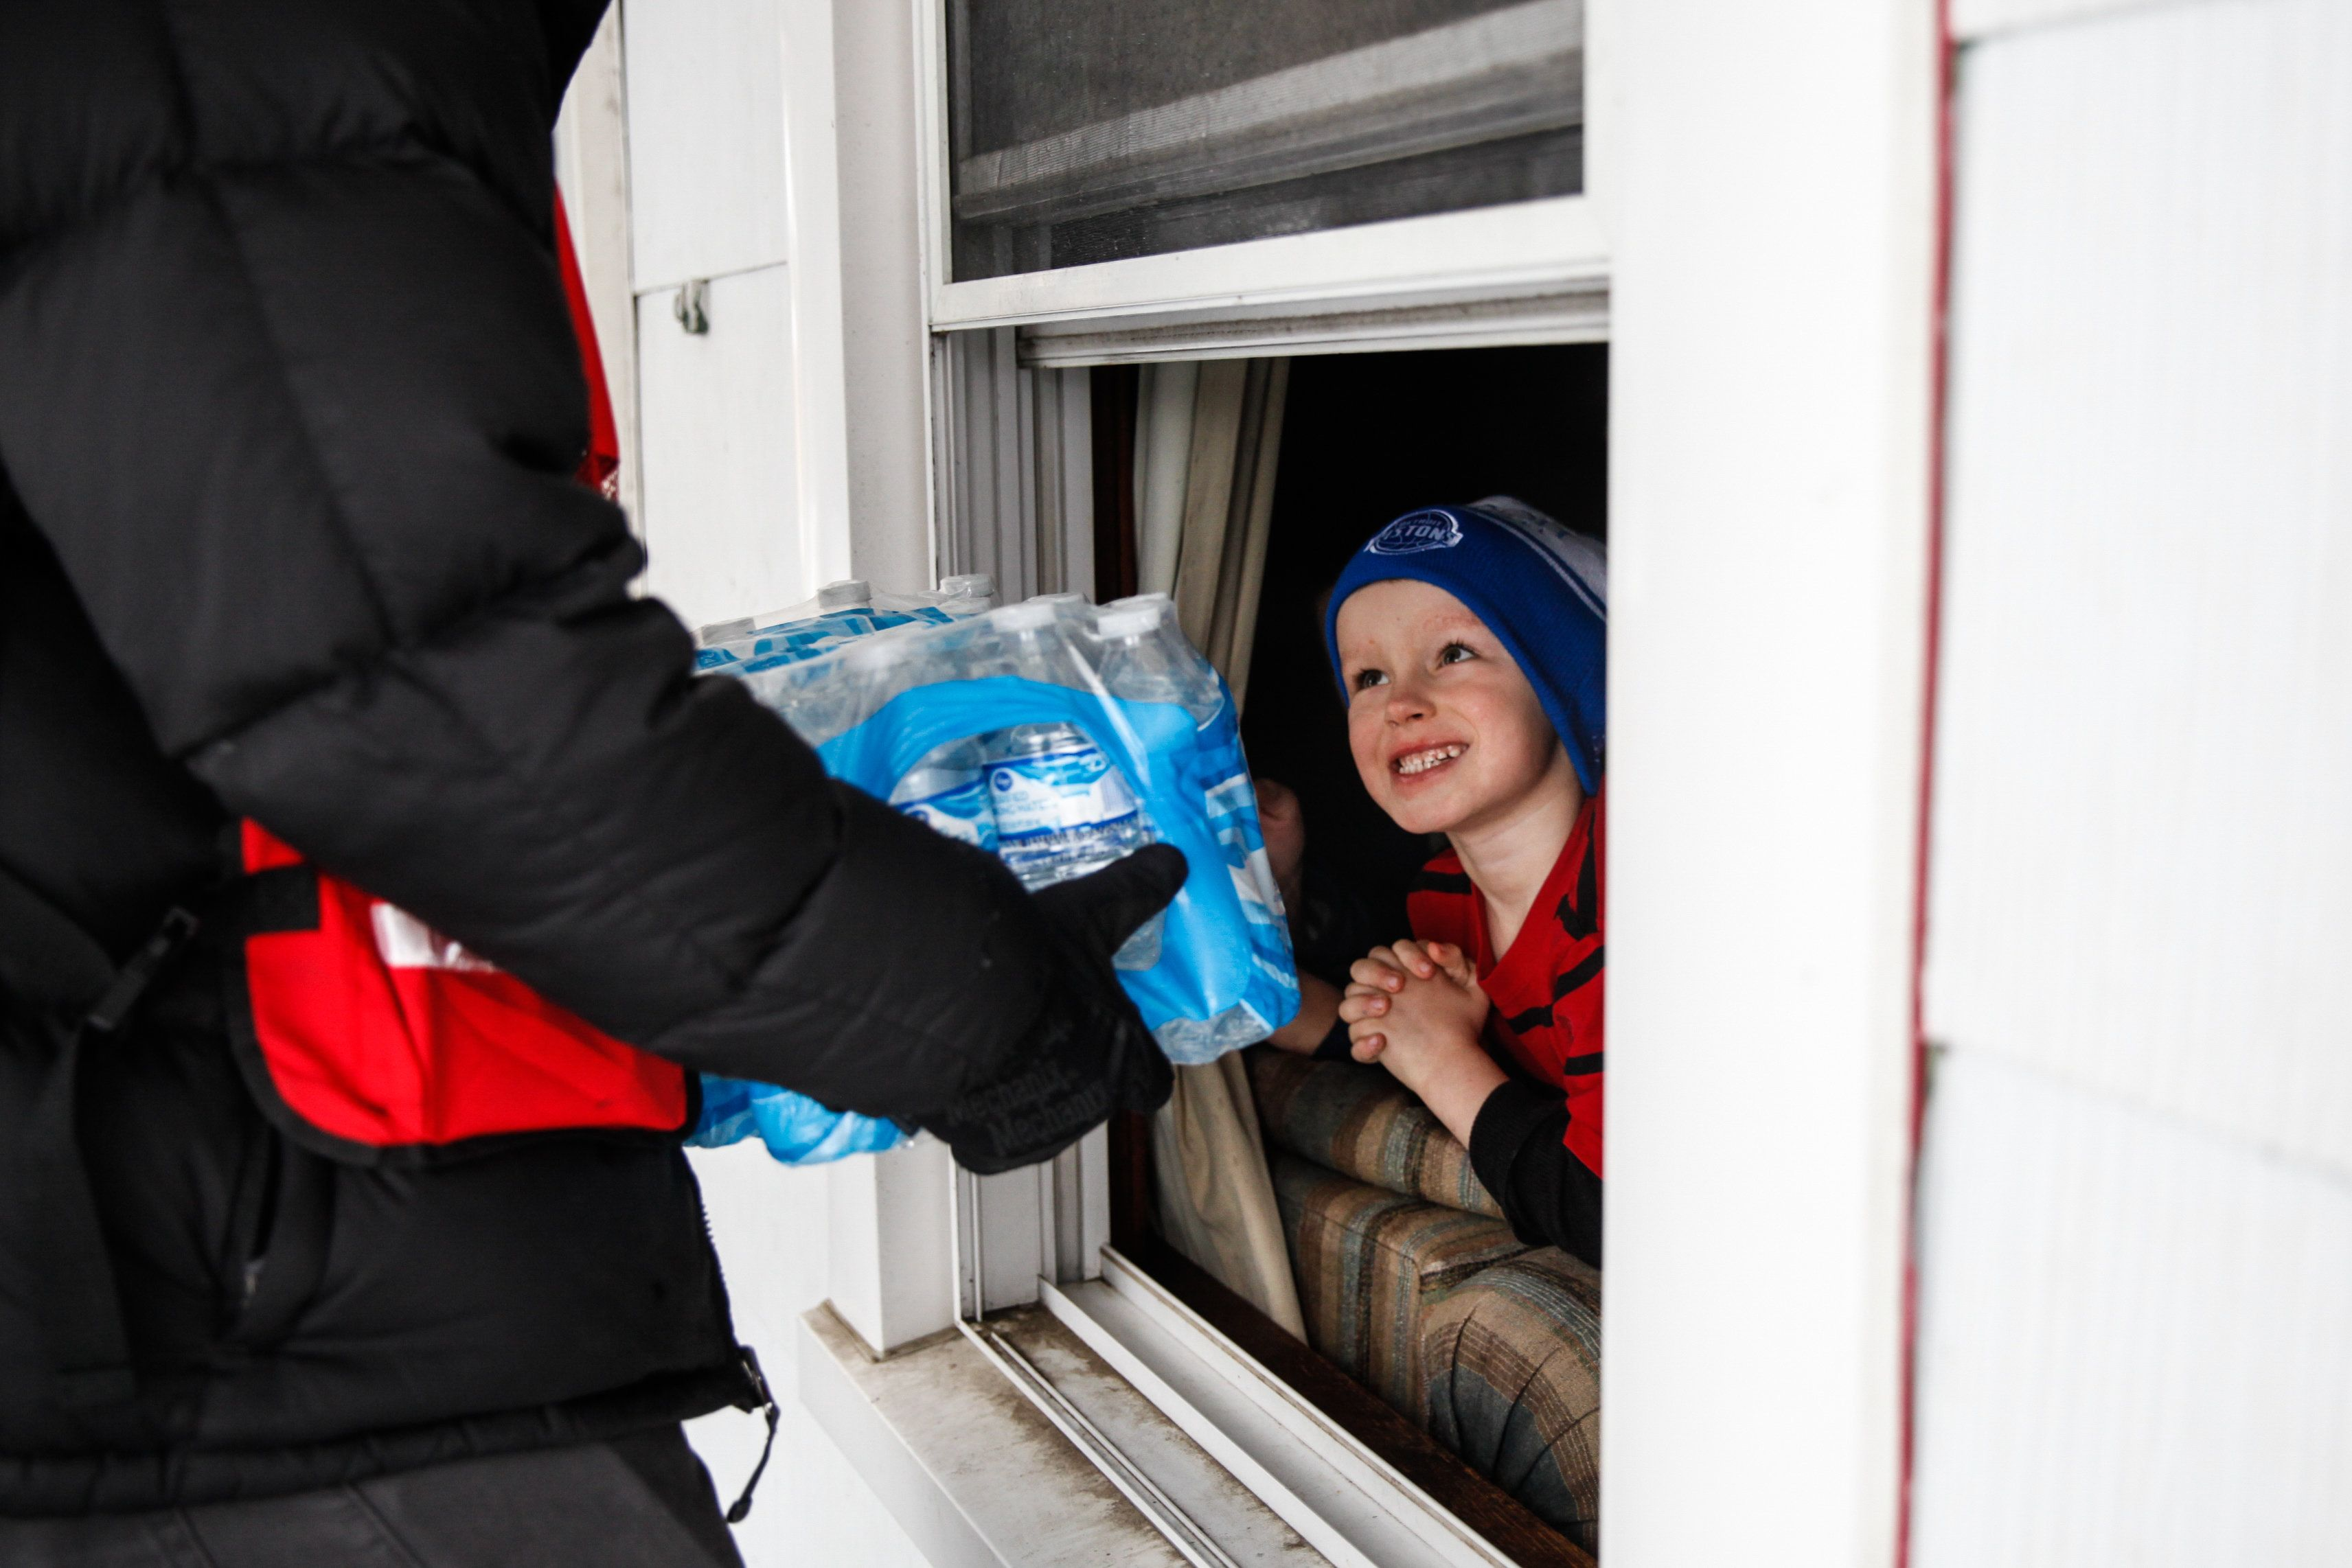 Jake McSigue, 6, receives a package of bottled water through the window of his grandma's home on Jan. 21, 2016 in Flint, Mich